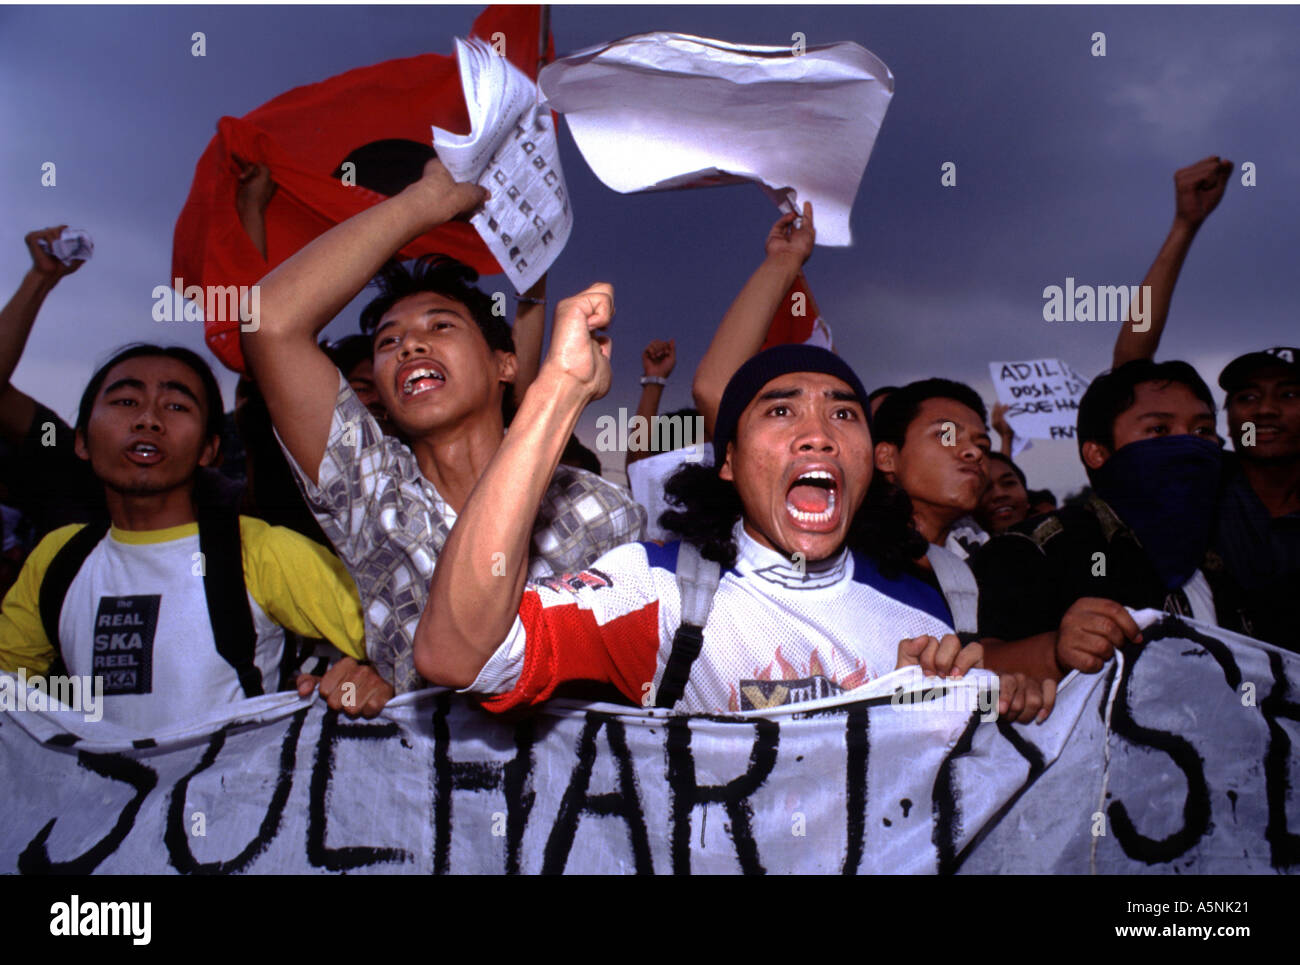 JAKARTA INDONESIA EX PRESIDENT SUHARTO IS CLEARED OF CORRUPTION CHARGES THE CITY ERRUPTS IN VIOLENCE - Stock Image